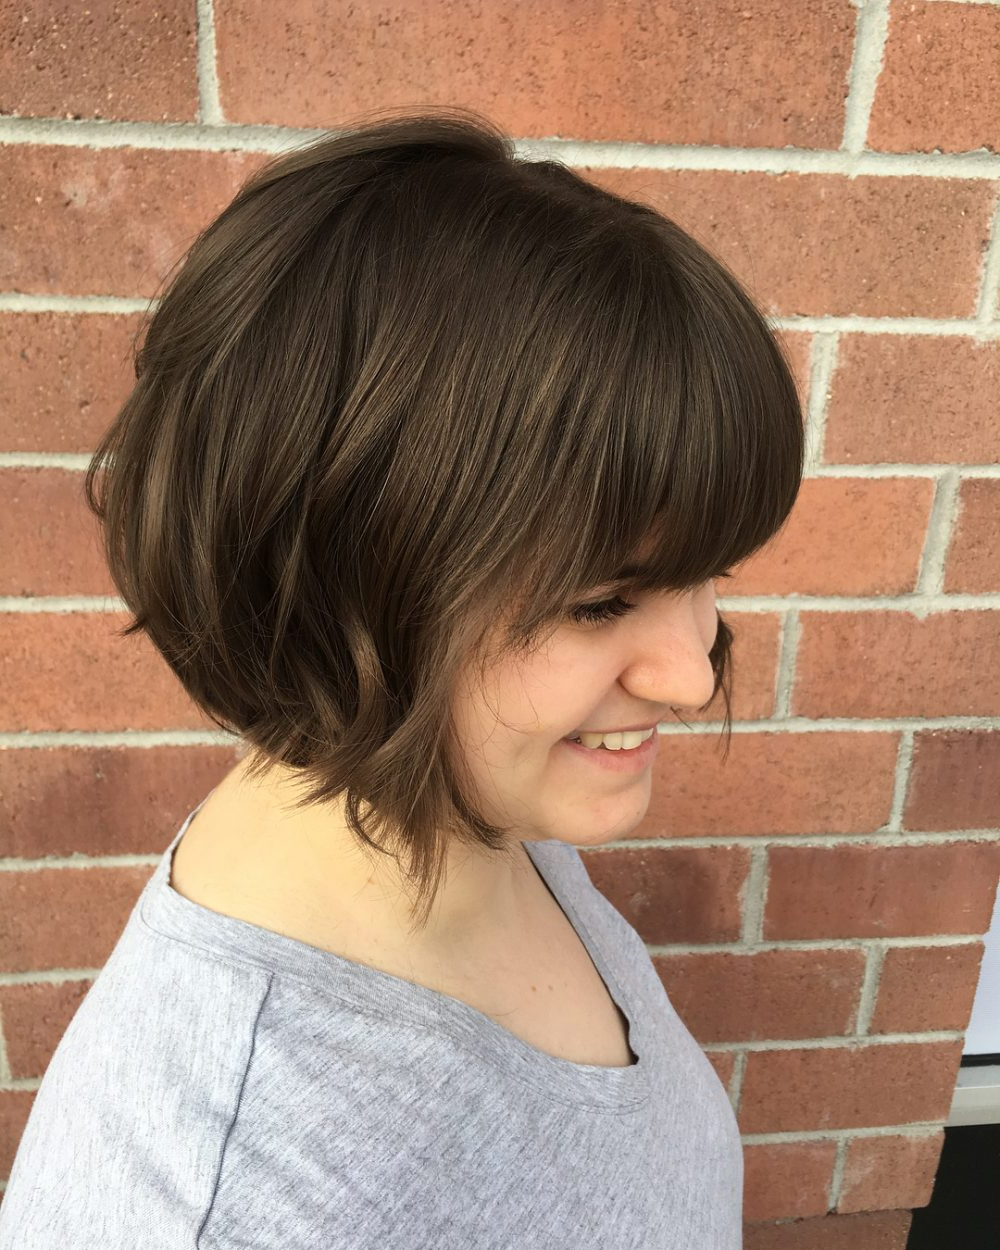 34 Greatest Short Haircuts And Hairstyles For Thick Hair For 2018 Intended For Short Hairstyles For Very Thick Hair (View 14 of 25)